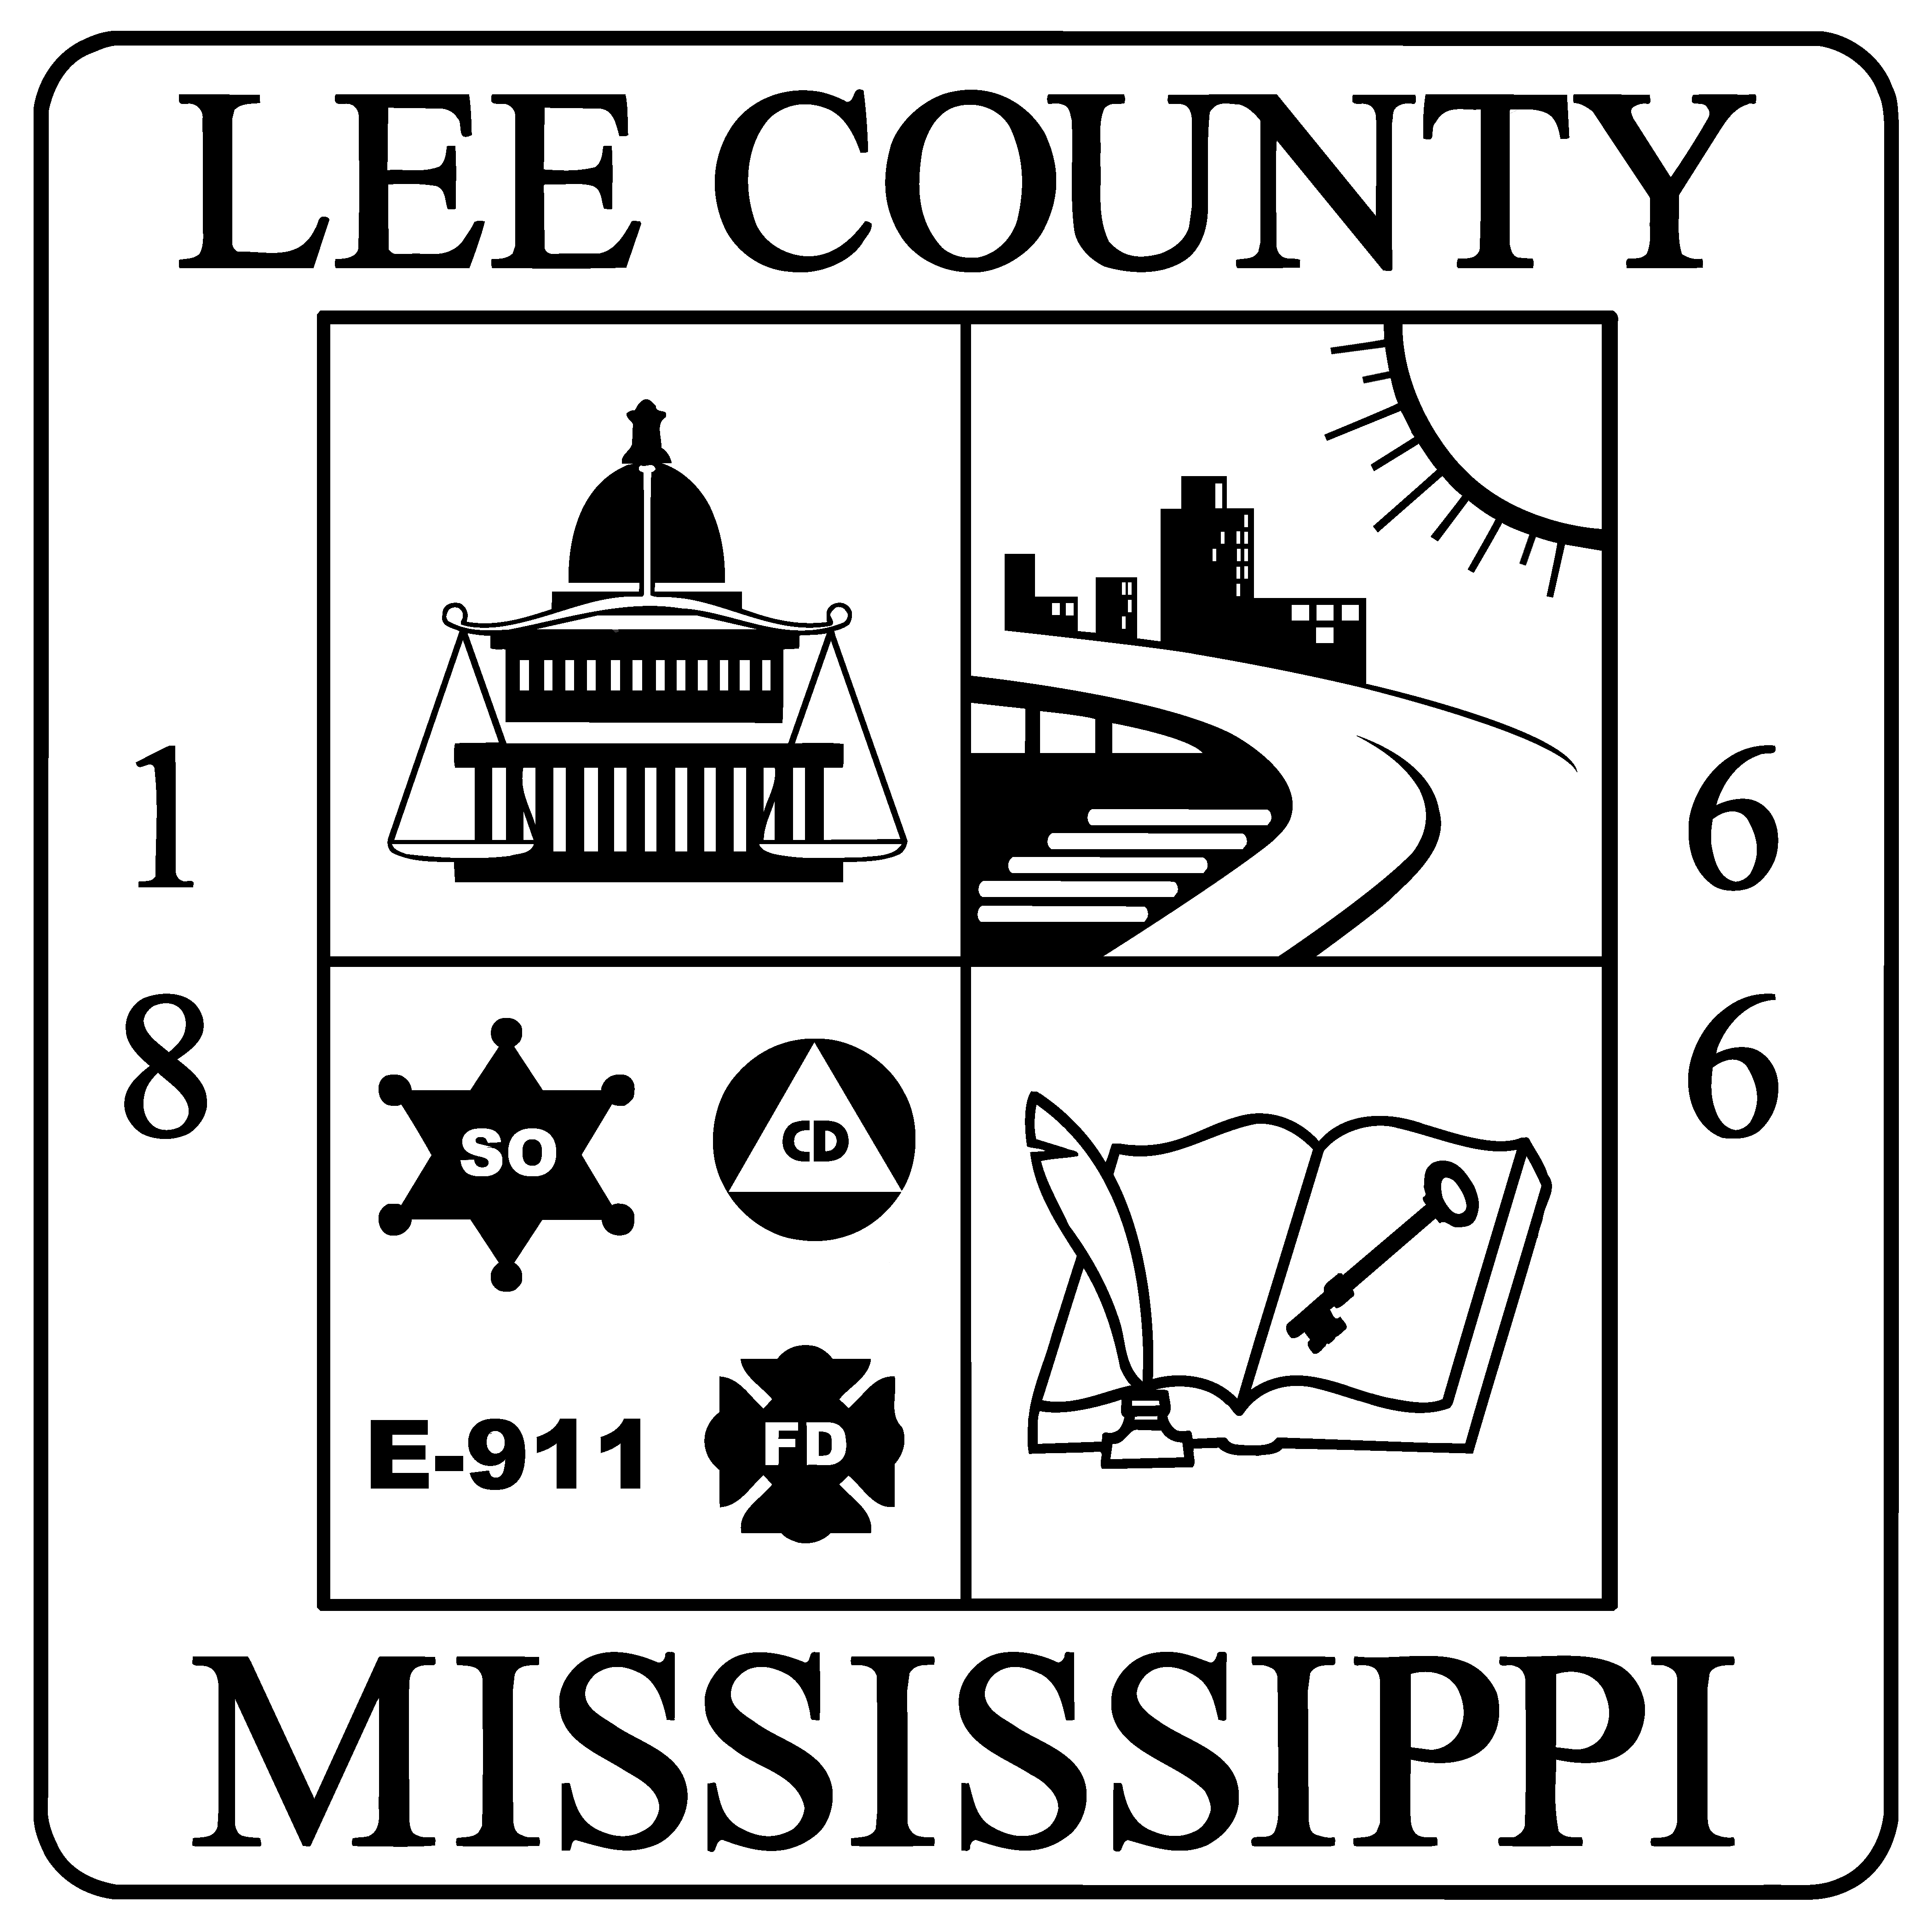 Lee County Board of Supervisors